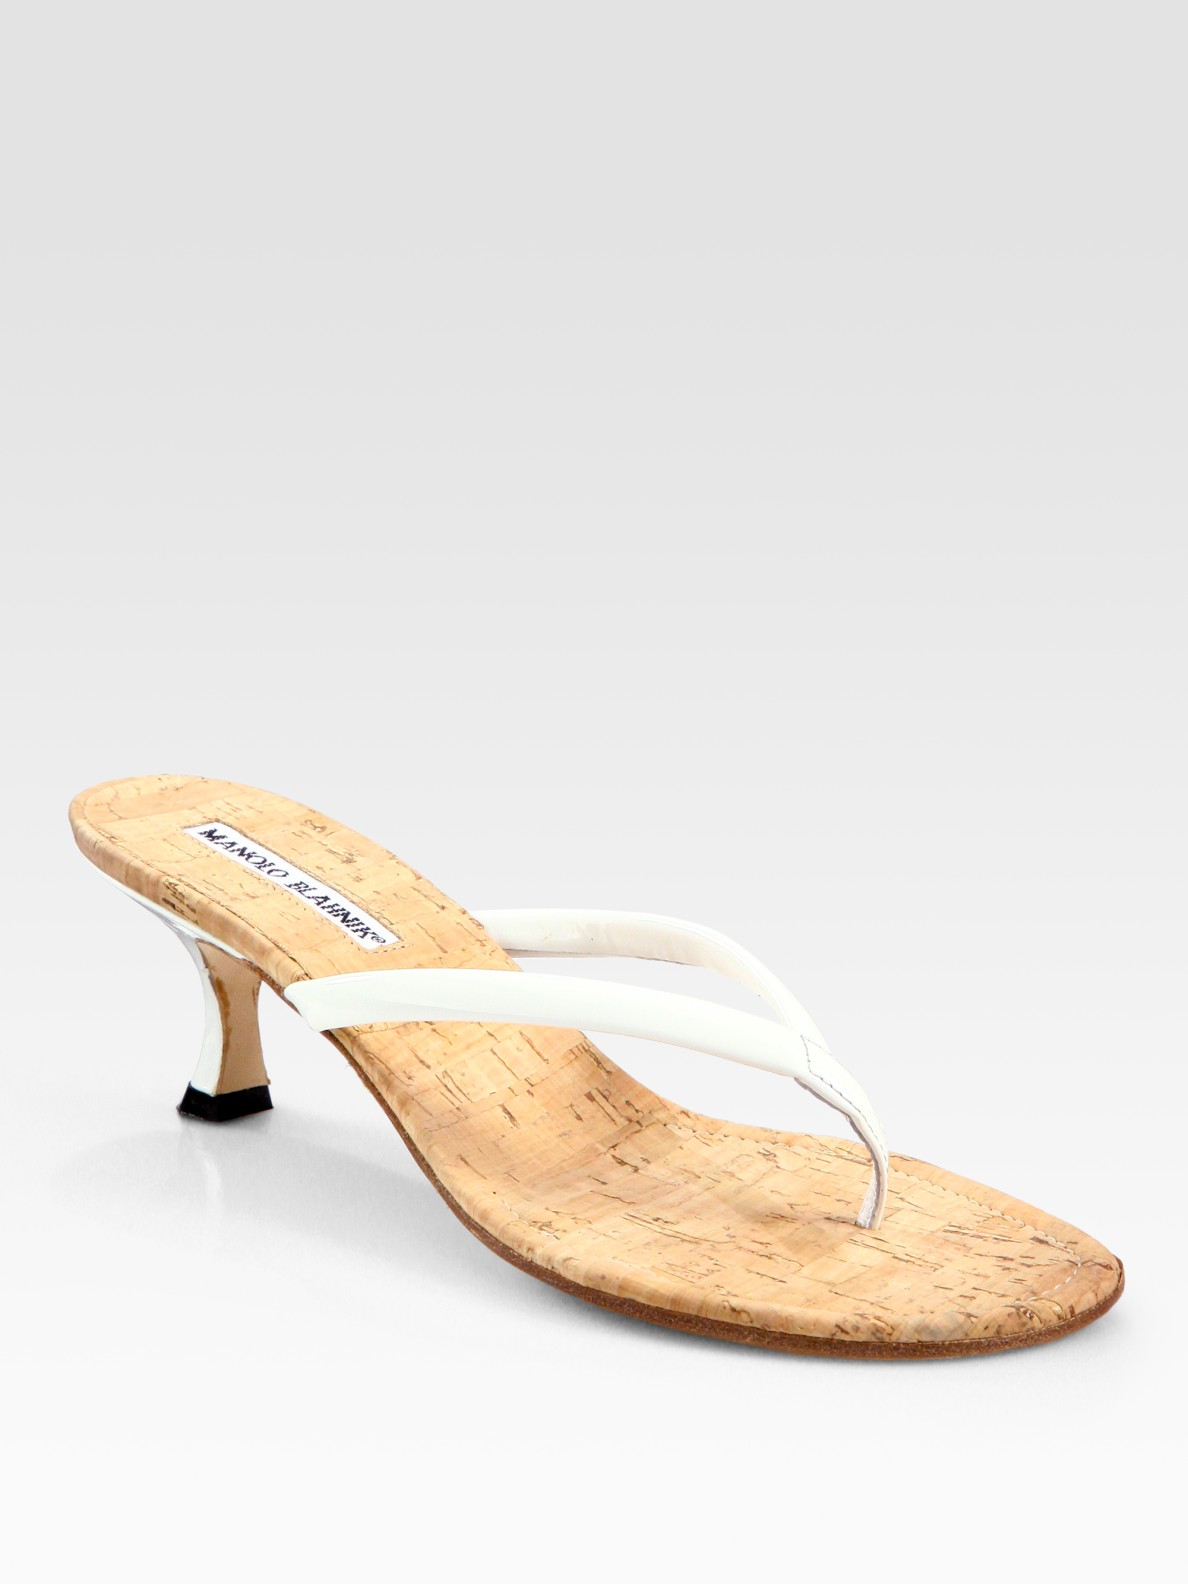 Manolo blahnik Patent Leather and Cork Thong Sandals in White | Lyst